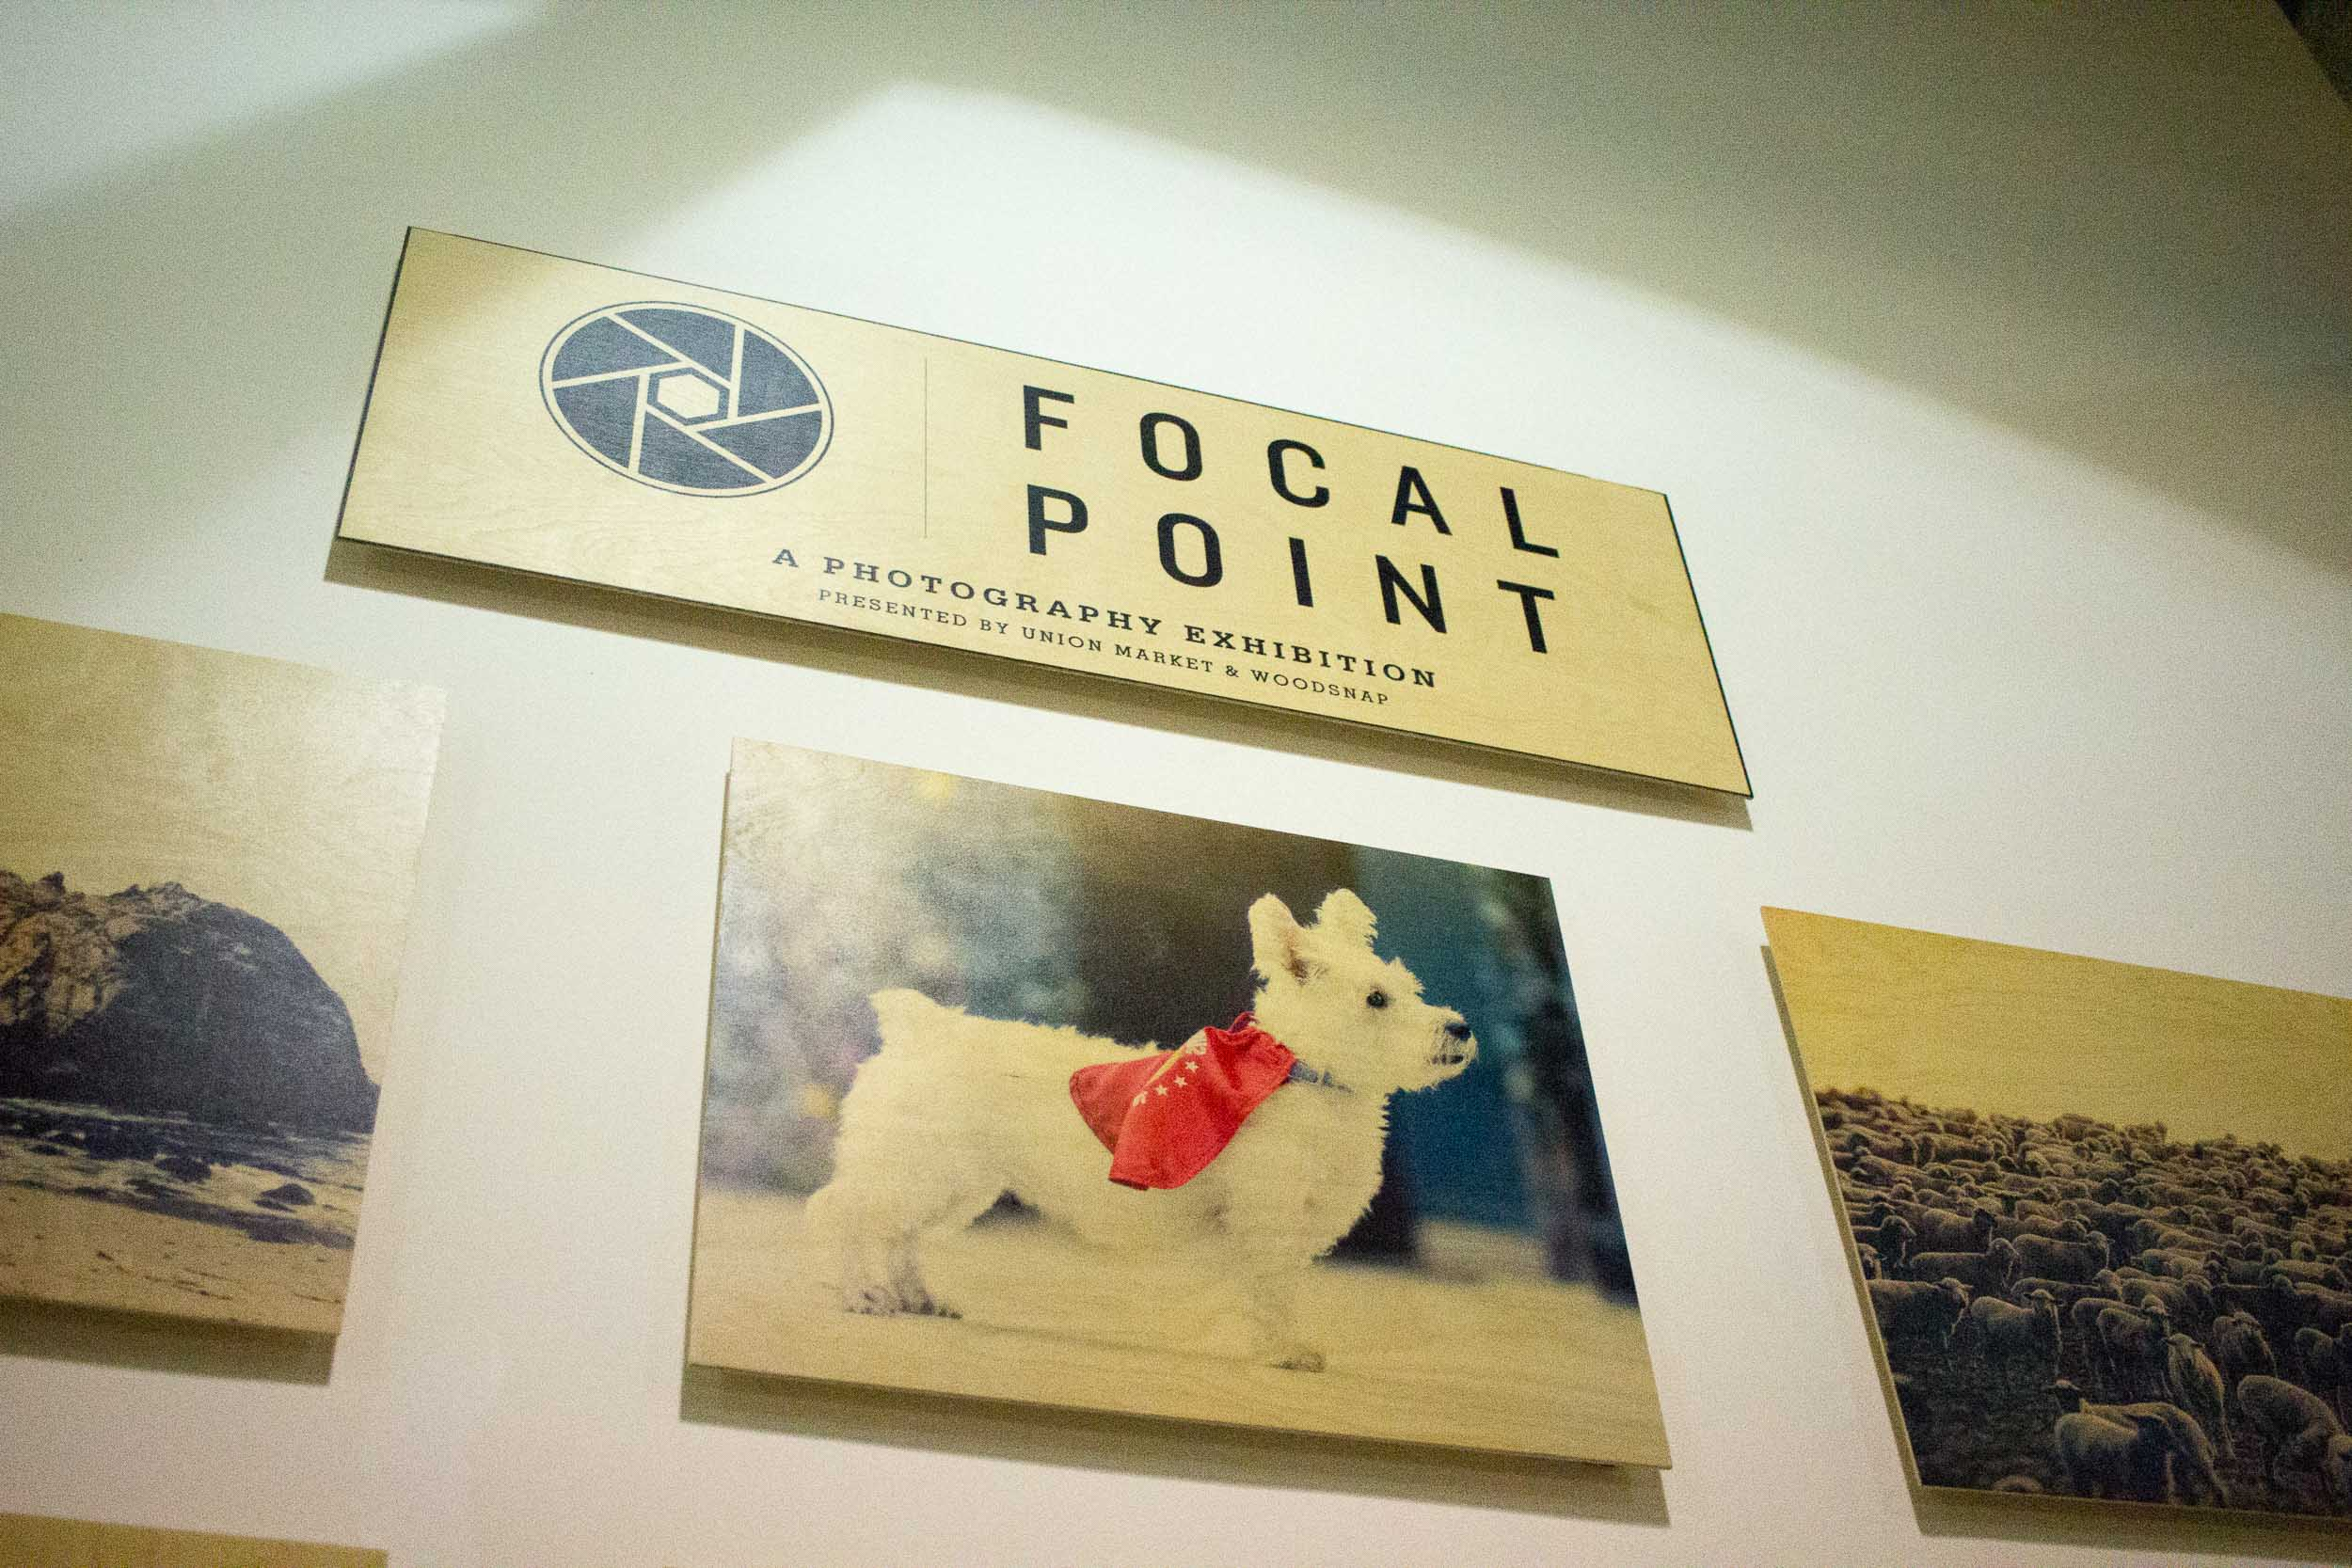 Steamer Lee Dog Photography - Focal Point Mission Viejo WoodSnap Exhibit - 12.jpg